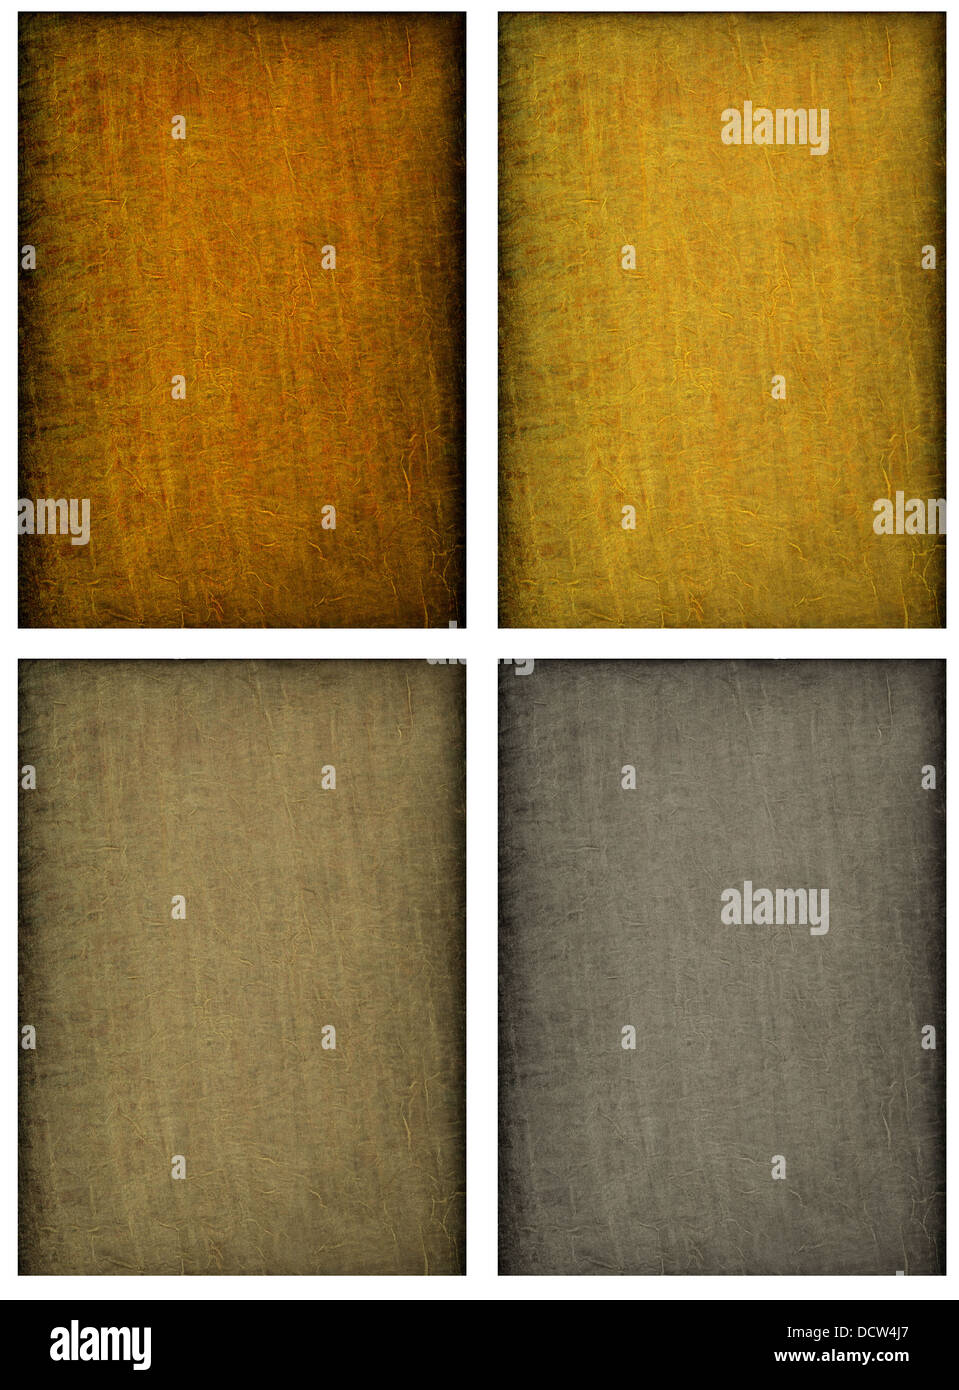 Collage of beautiful textured backgrounds in earthy tones of orange, yellow, brown and gray - Stock Image